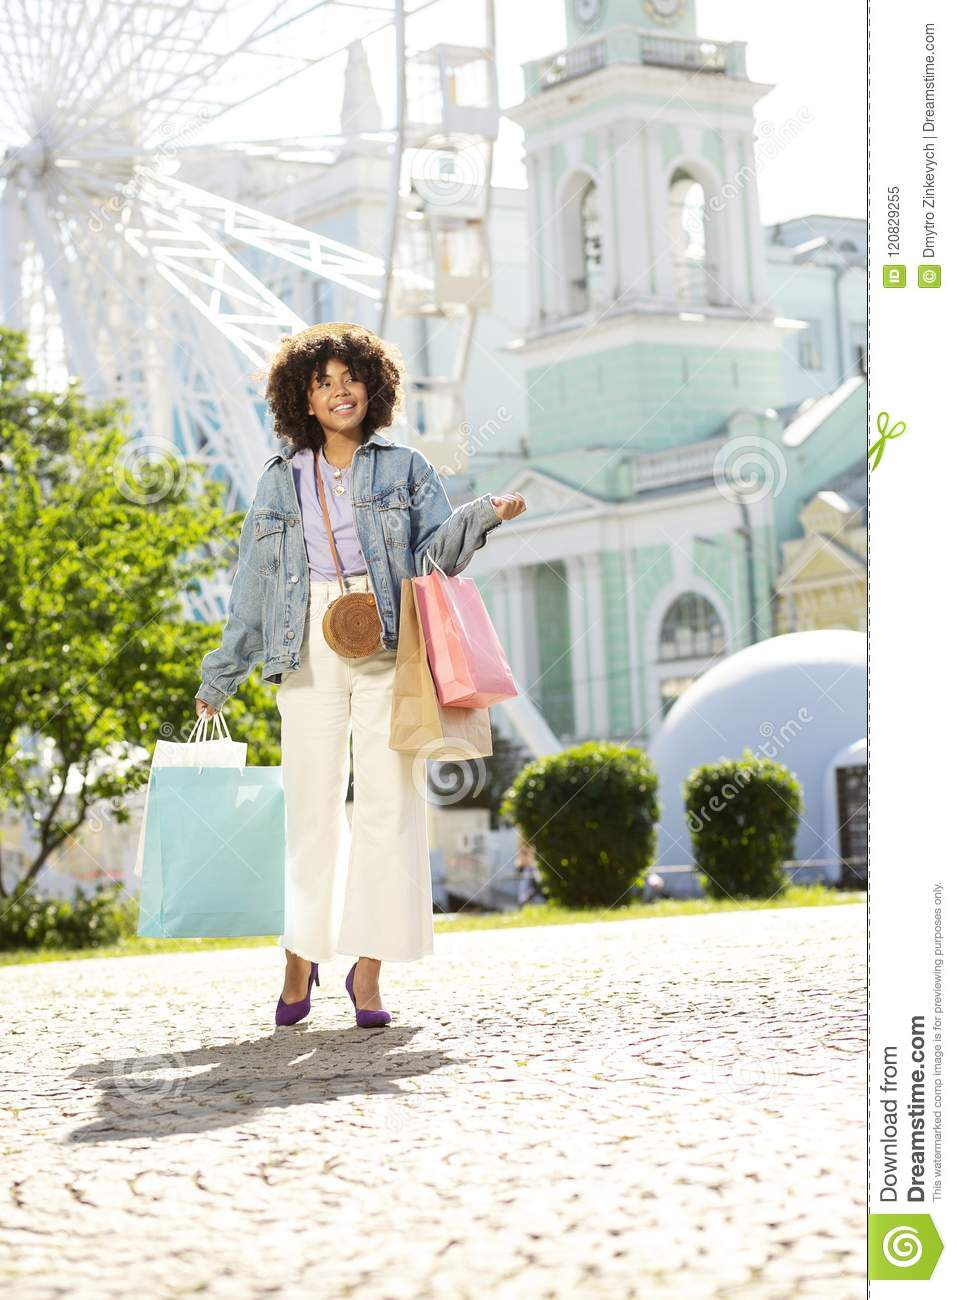 Charming Curly Girl Coming Back From Shopping Stock Image - Image of